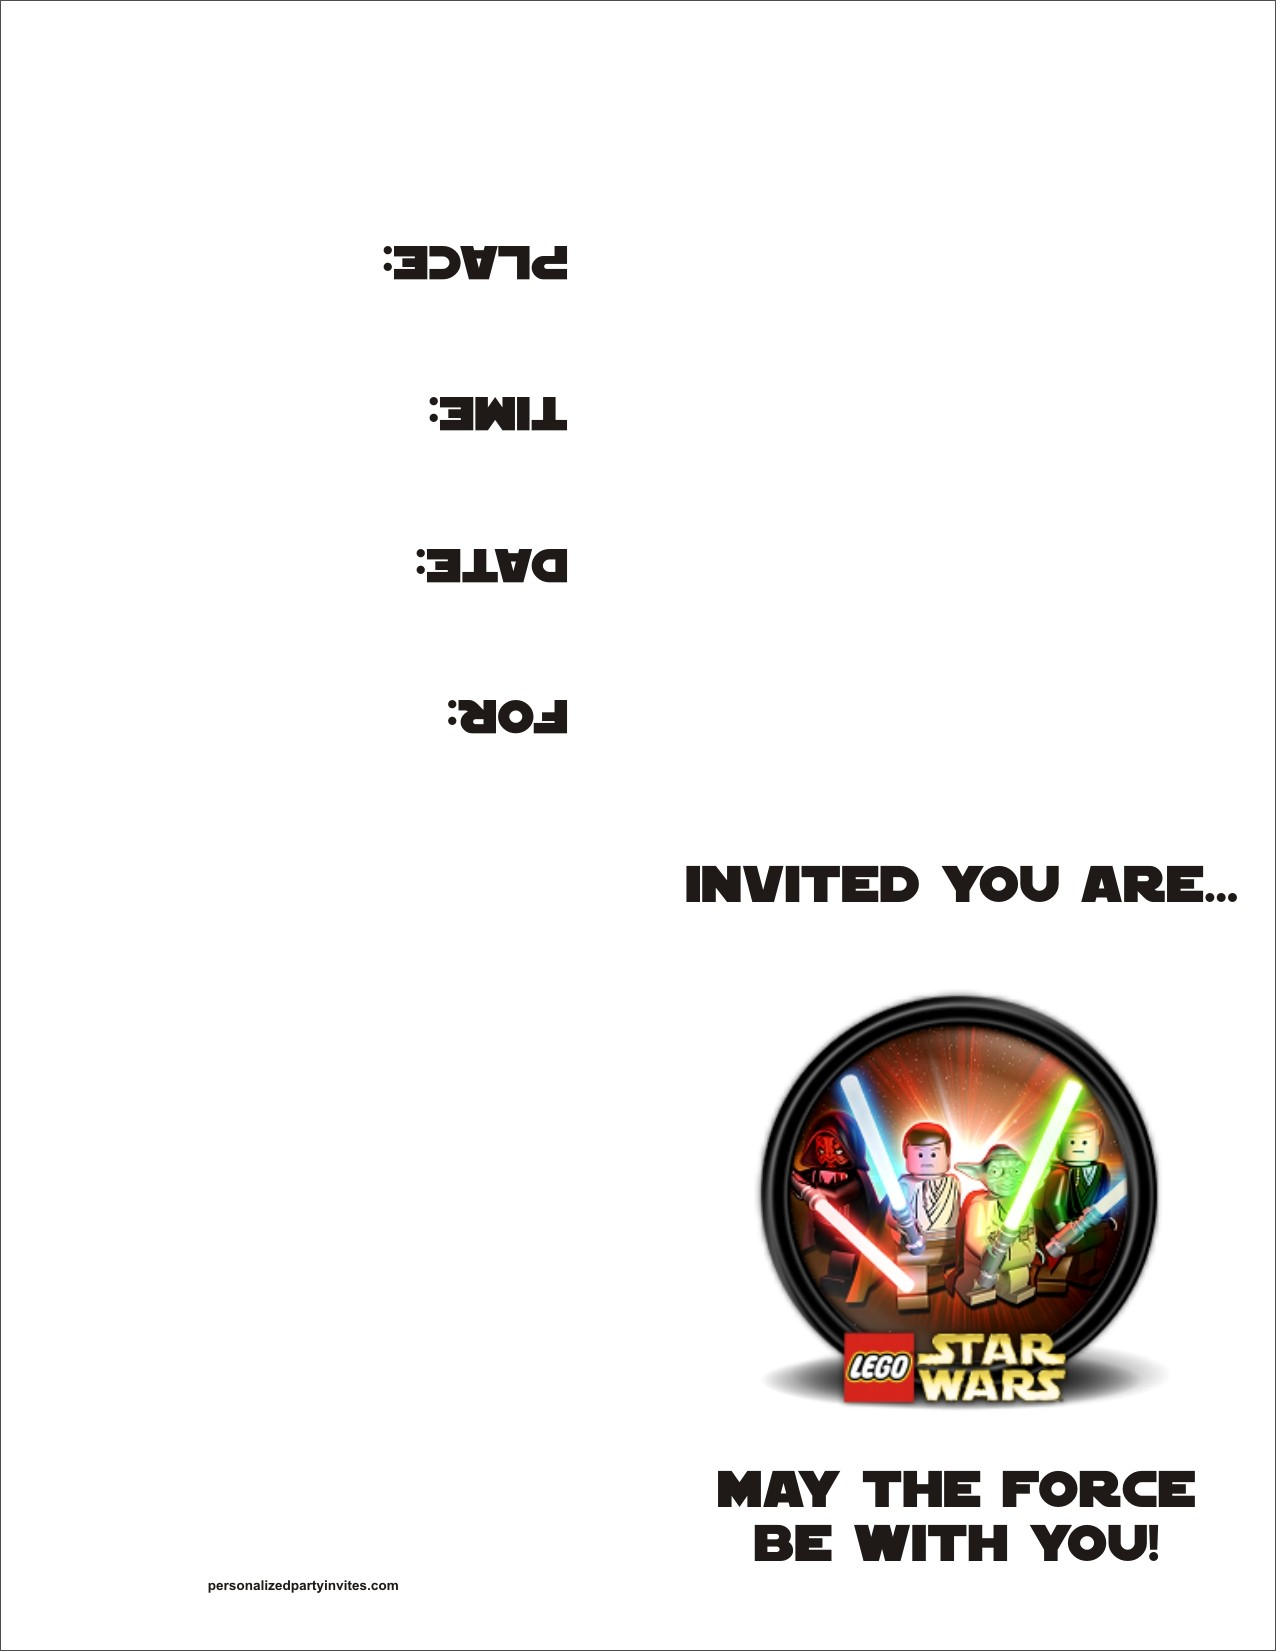 Lego Star Wars FREE Printable Birthday Party Invitation – Printable Birthday Party Invitation Cards